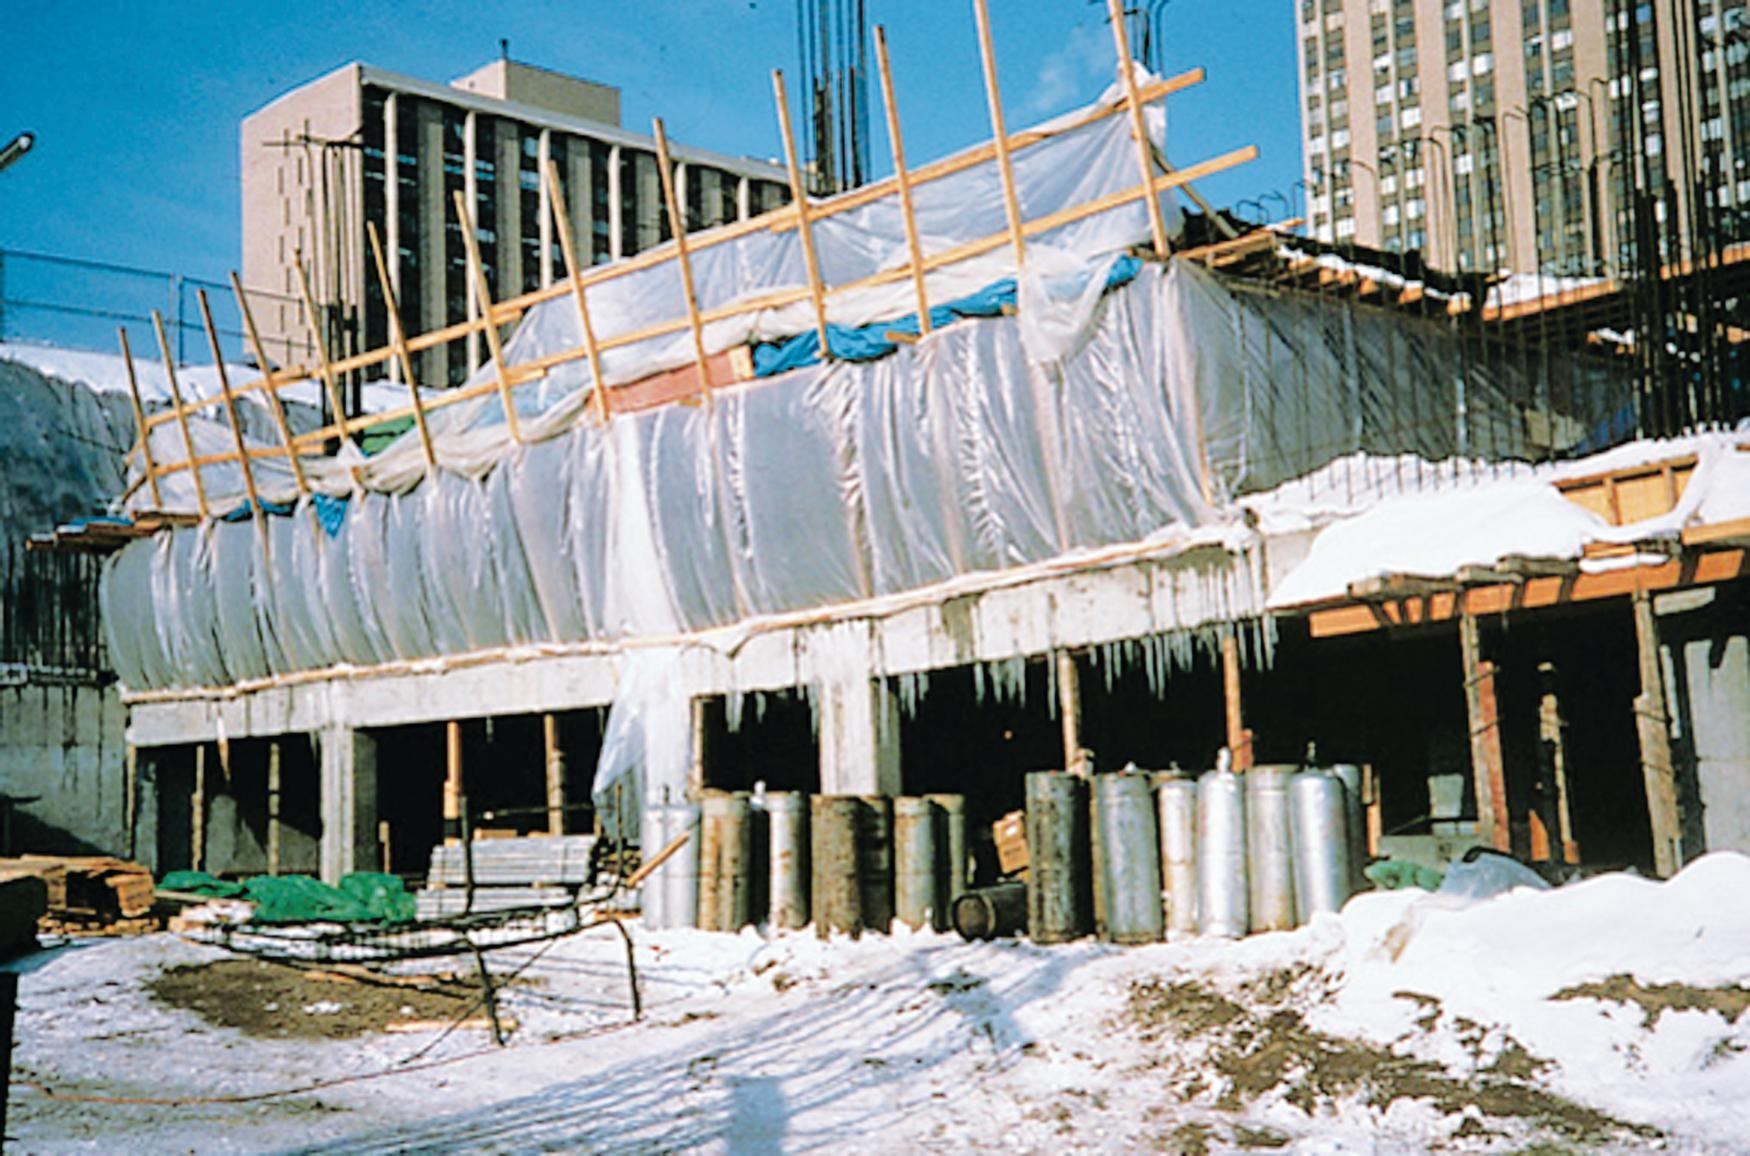 cold weather concreting 101 concrete construction magazine cold weather concreting 101 concrete construction magazine concrete concrete construction american concrete institute